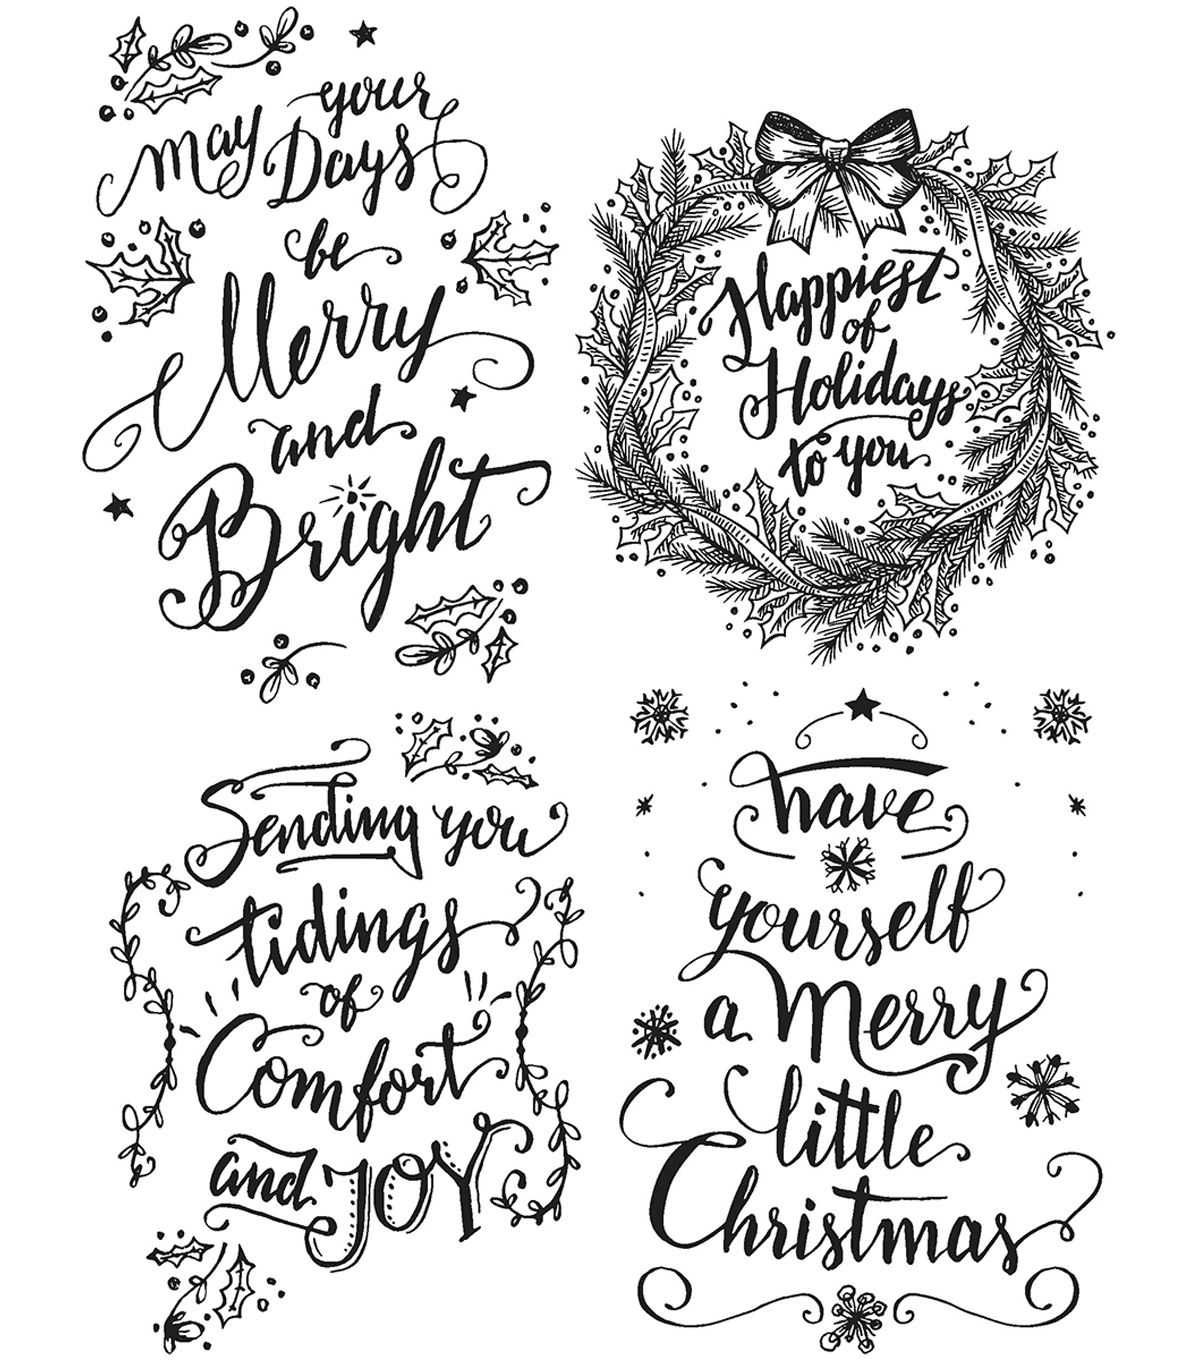 Stampers Anonymous CMS286 Tim Holtz Cling Stamps 7X8.5-Doodle Greetings #2,